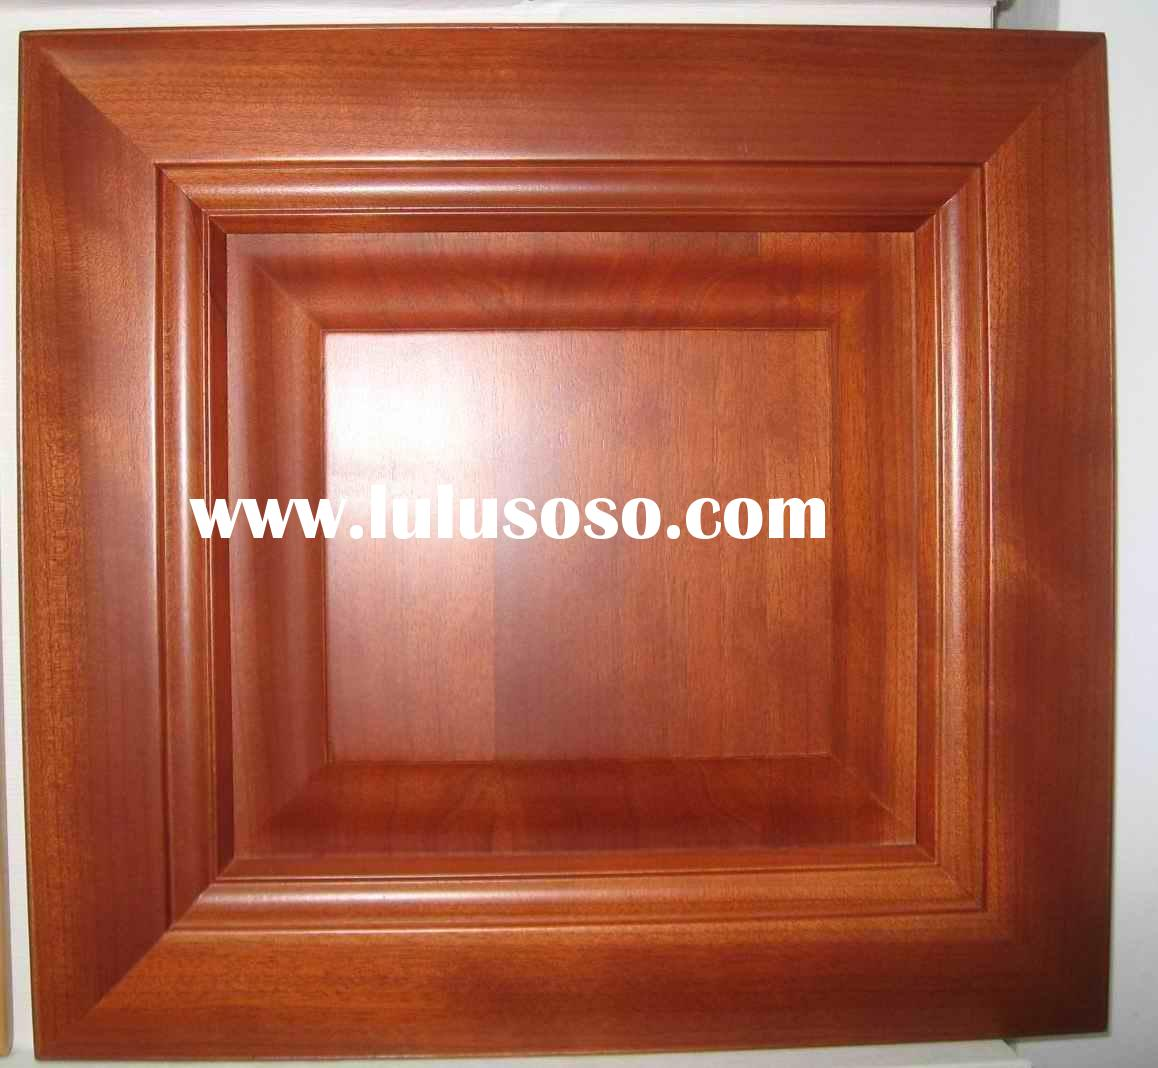 solid wood kitchen cabinet door-45 degree